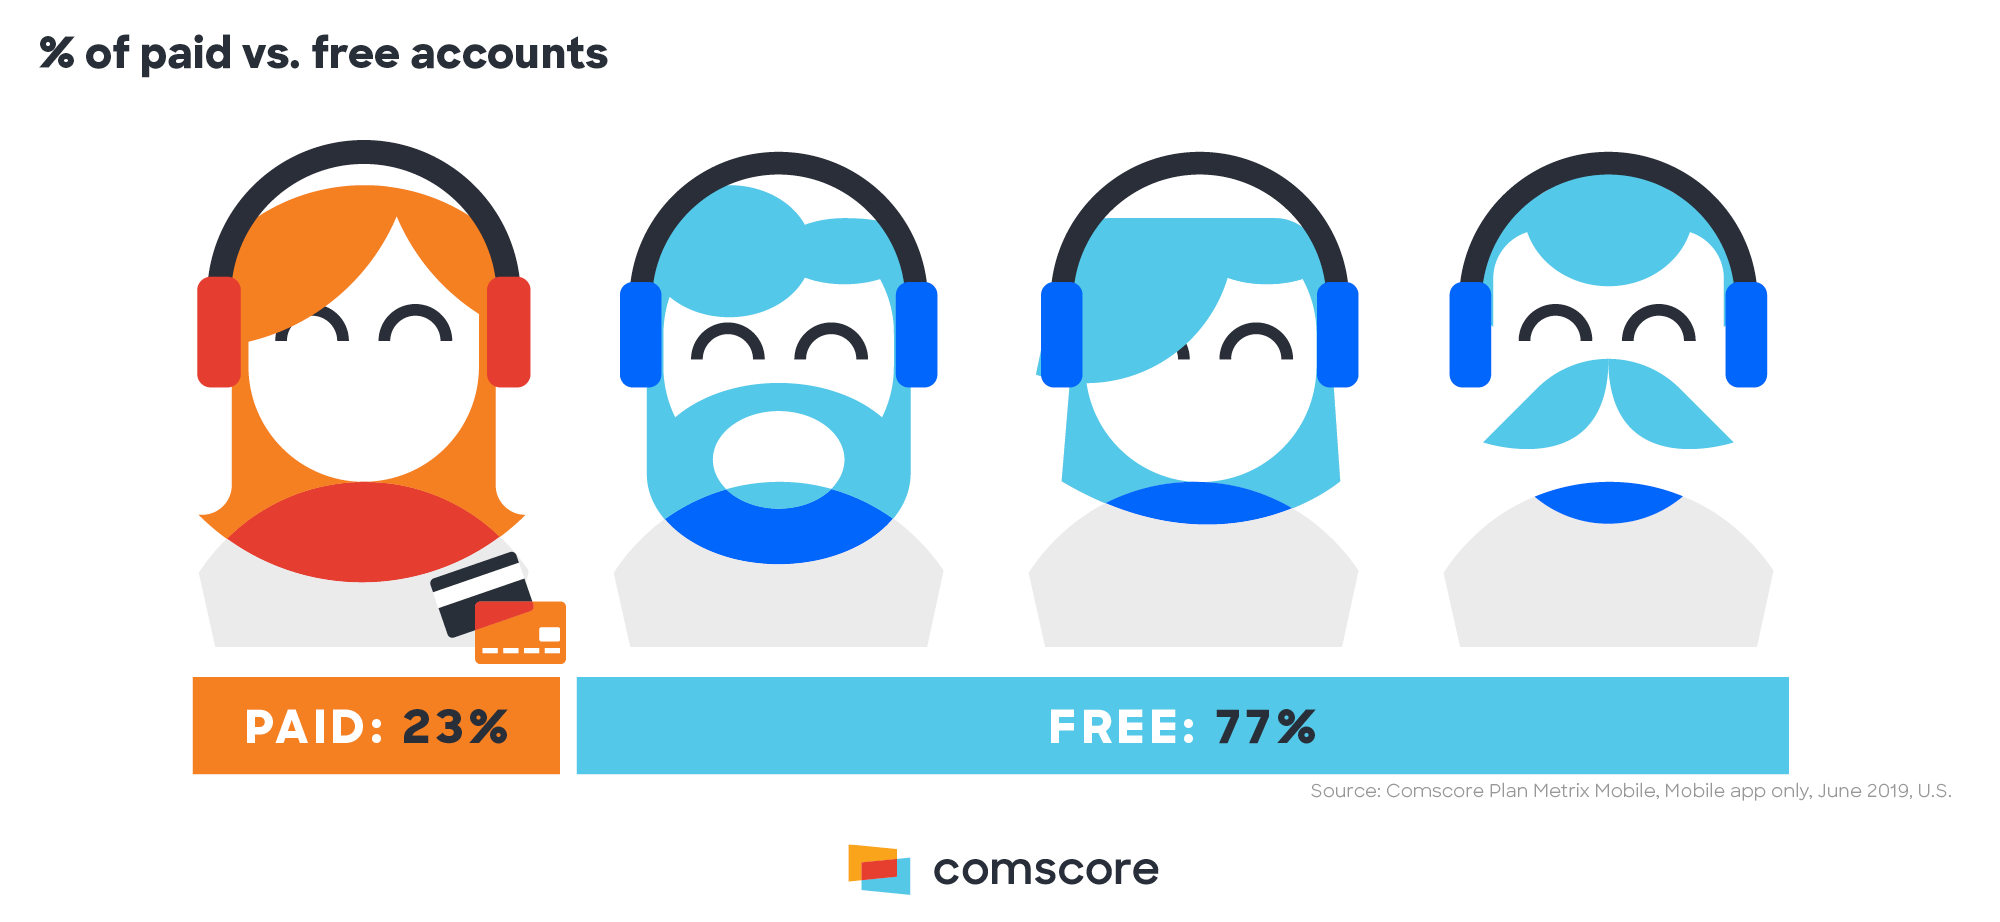 Percent of Paid Versus Free Accounts